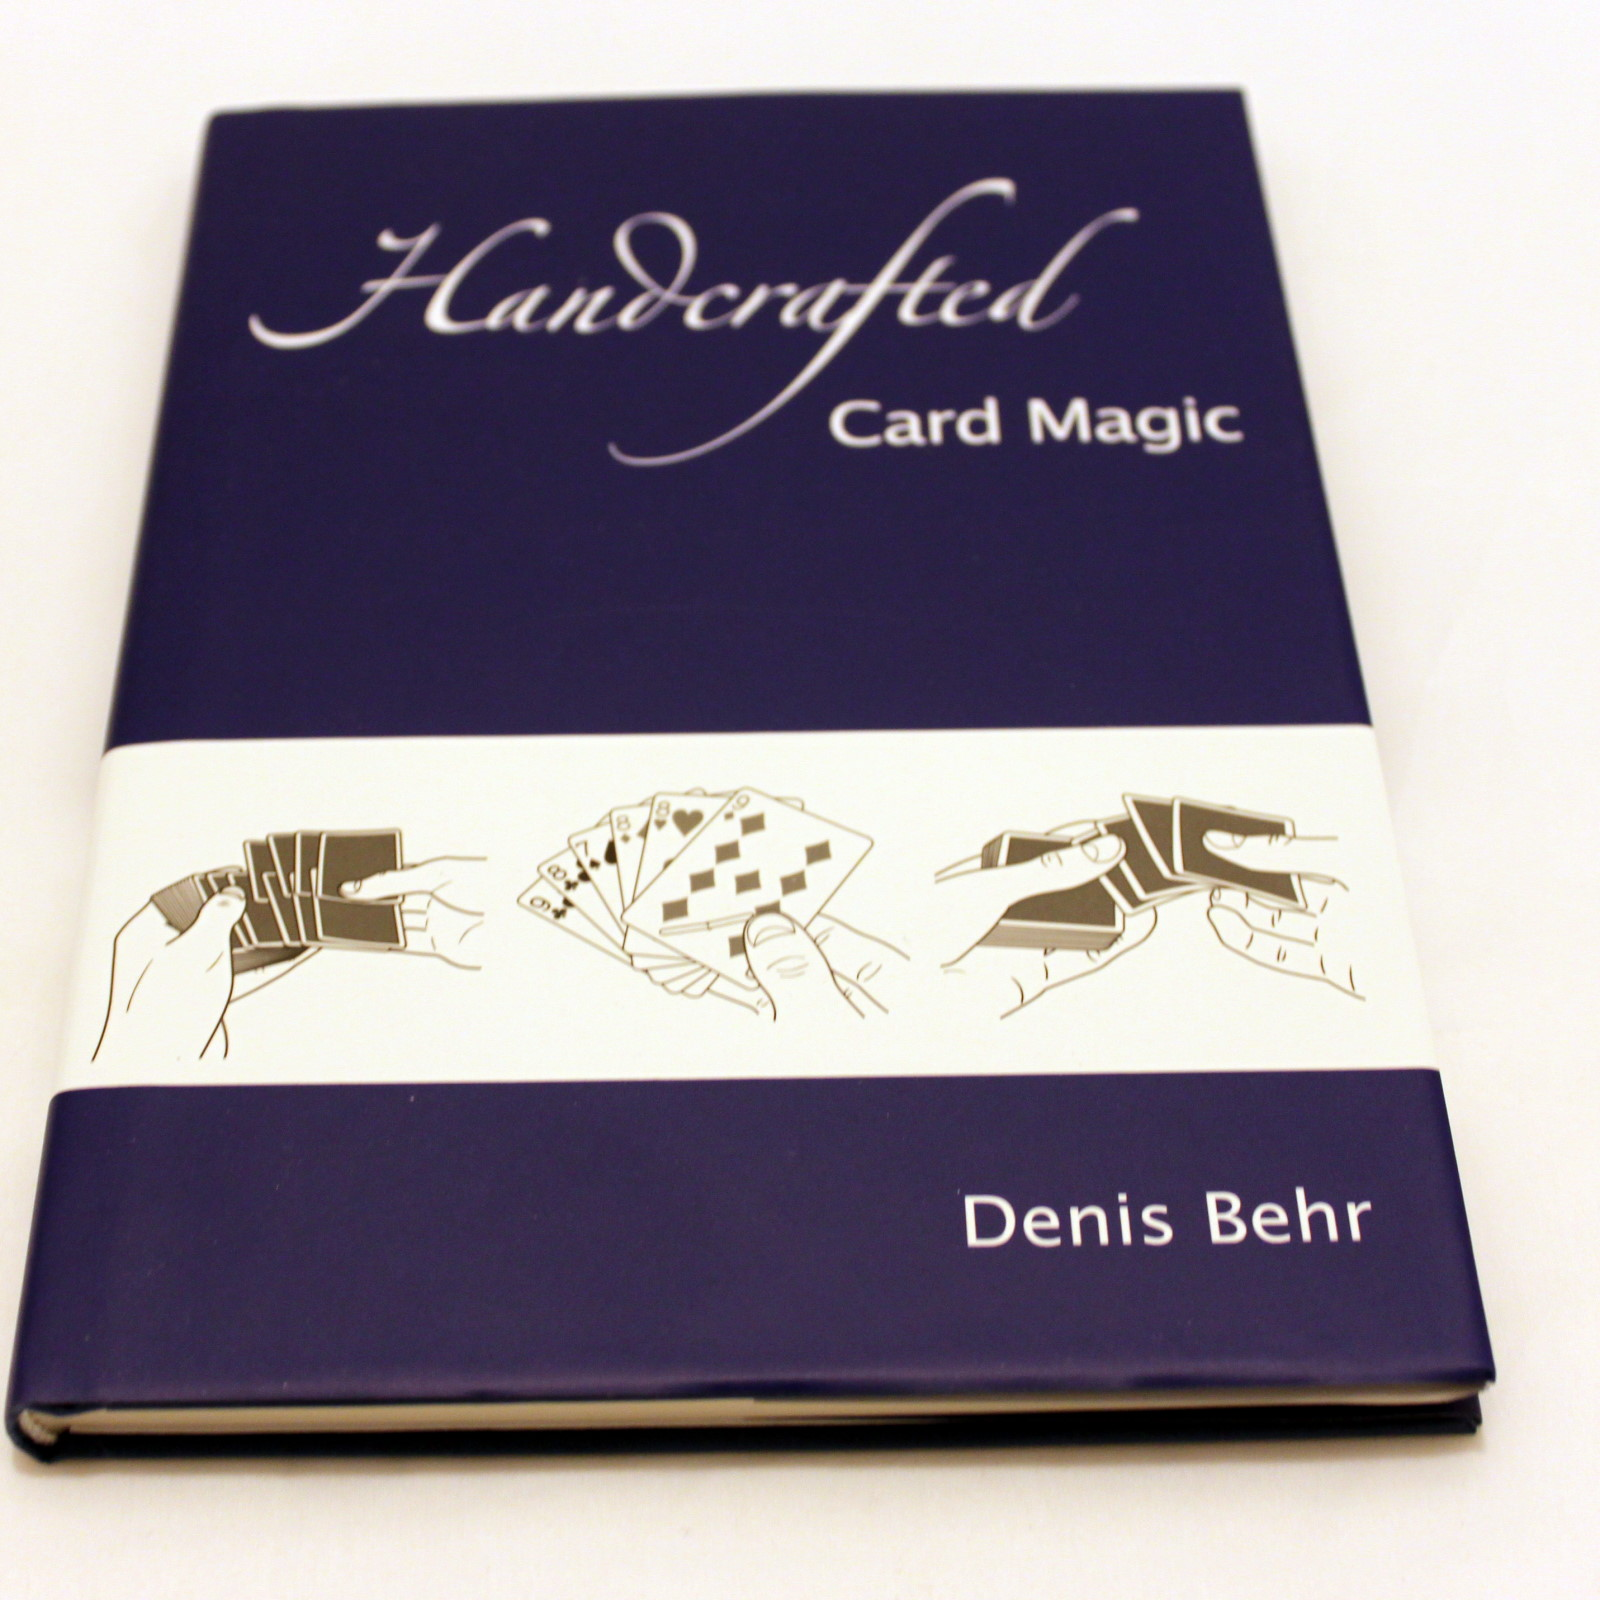 Handcrafted Card Magic by Denis Behr